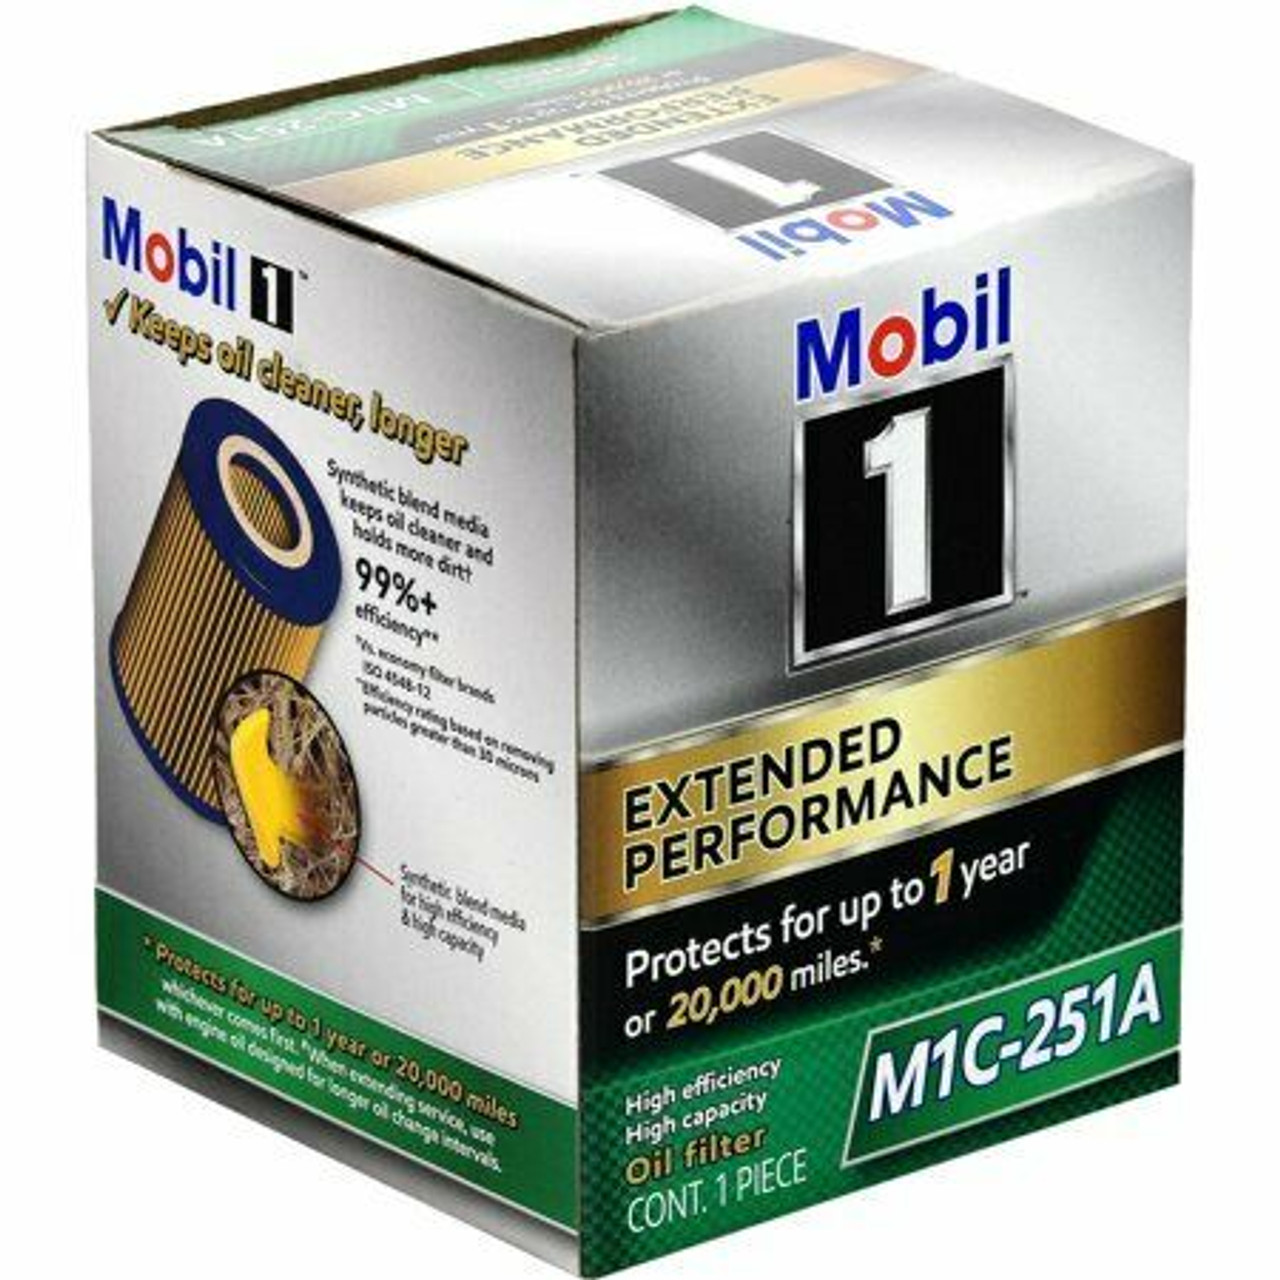 Mobil 1 Oil Filter >> M1c 251a Mobil 1 Ep Oil Filter Protects Up To 1 Year Or 32000km R2648p